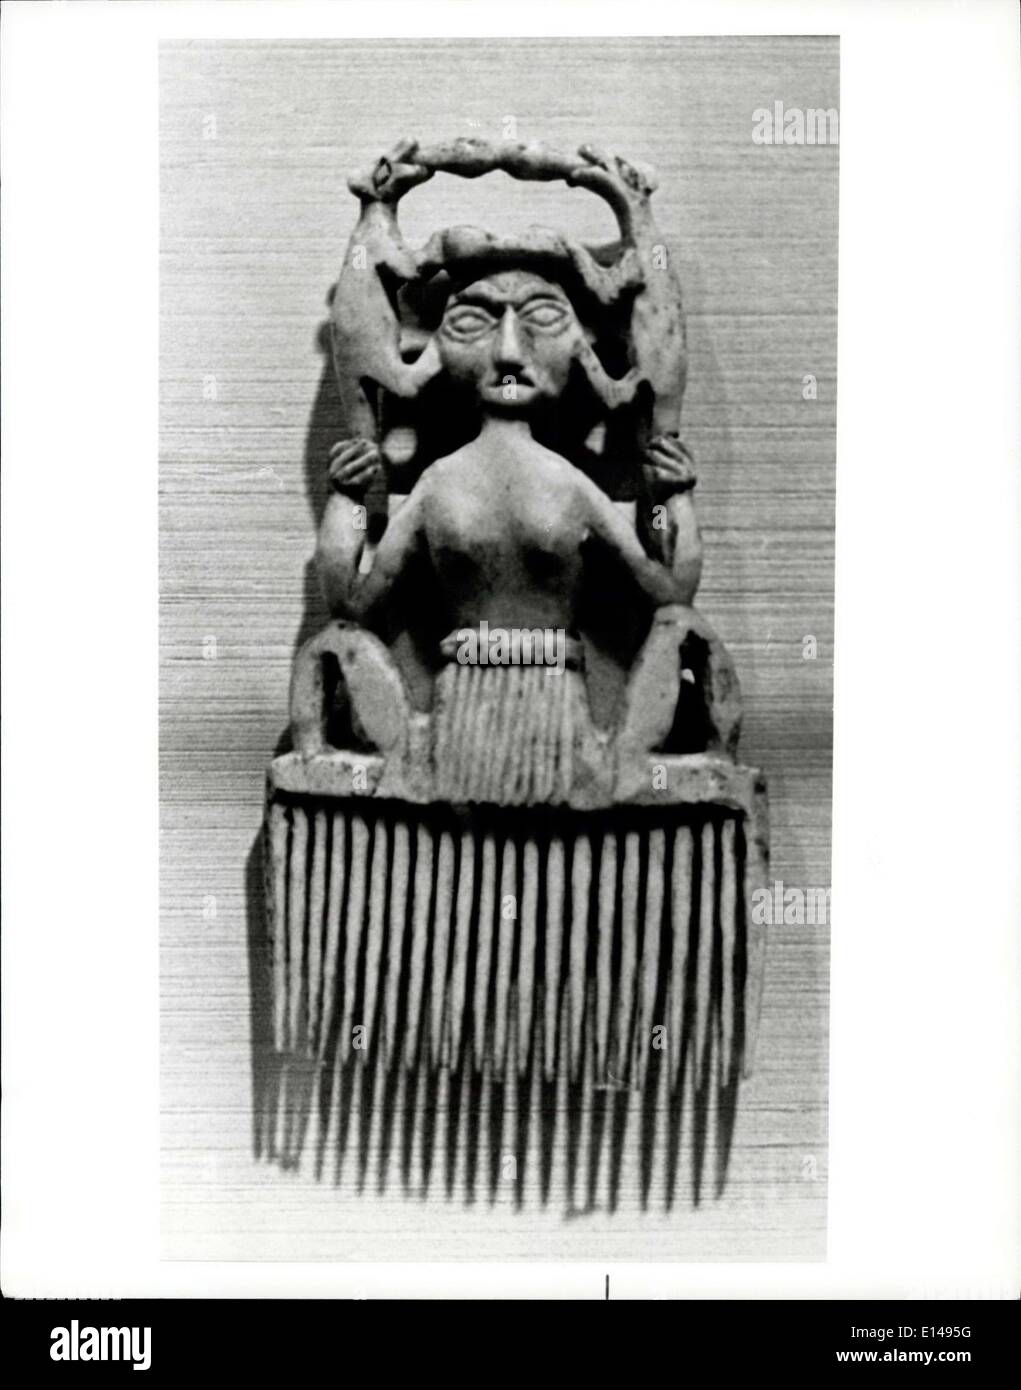 Apr. 17, 2012 - Art Of The First Americans: Pone comb of Salish tribe, sent home by a Hudson's Ray Company man to his ''Literary and Antiquarian Society'' in 1833, proves art's universality in its suggestion of Asian motifs. - Stock Image